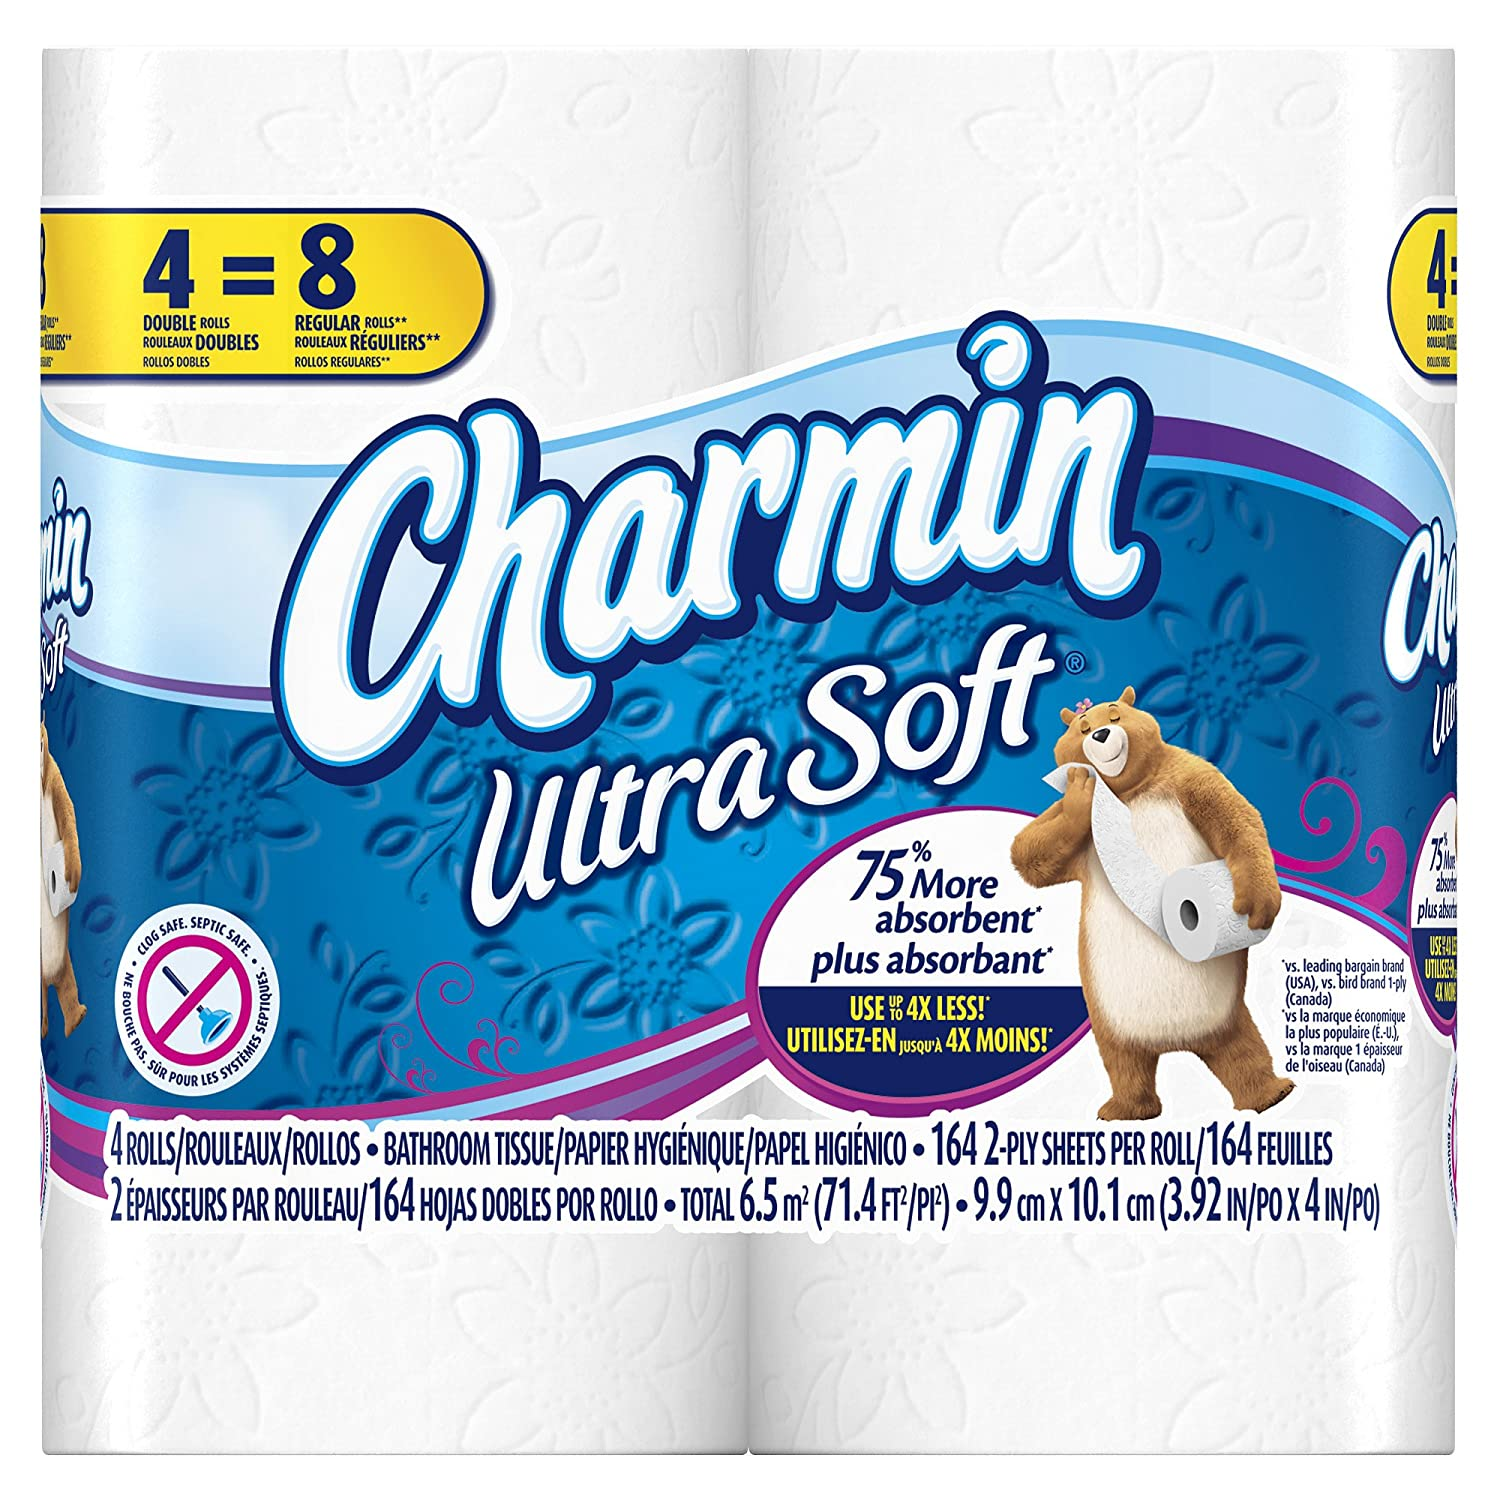 Amazon.com: Charmin Ultra Soft Toilet Paper 40 Double Roll (10 Packs ...